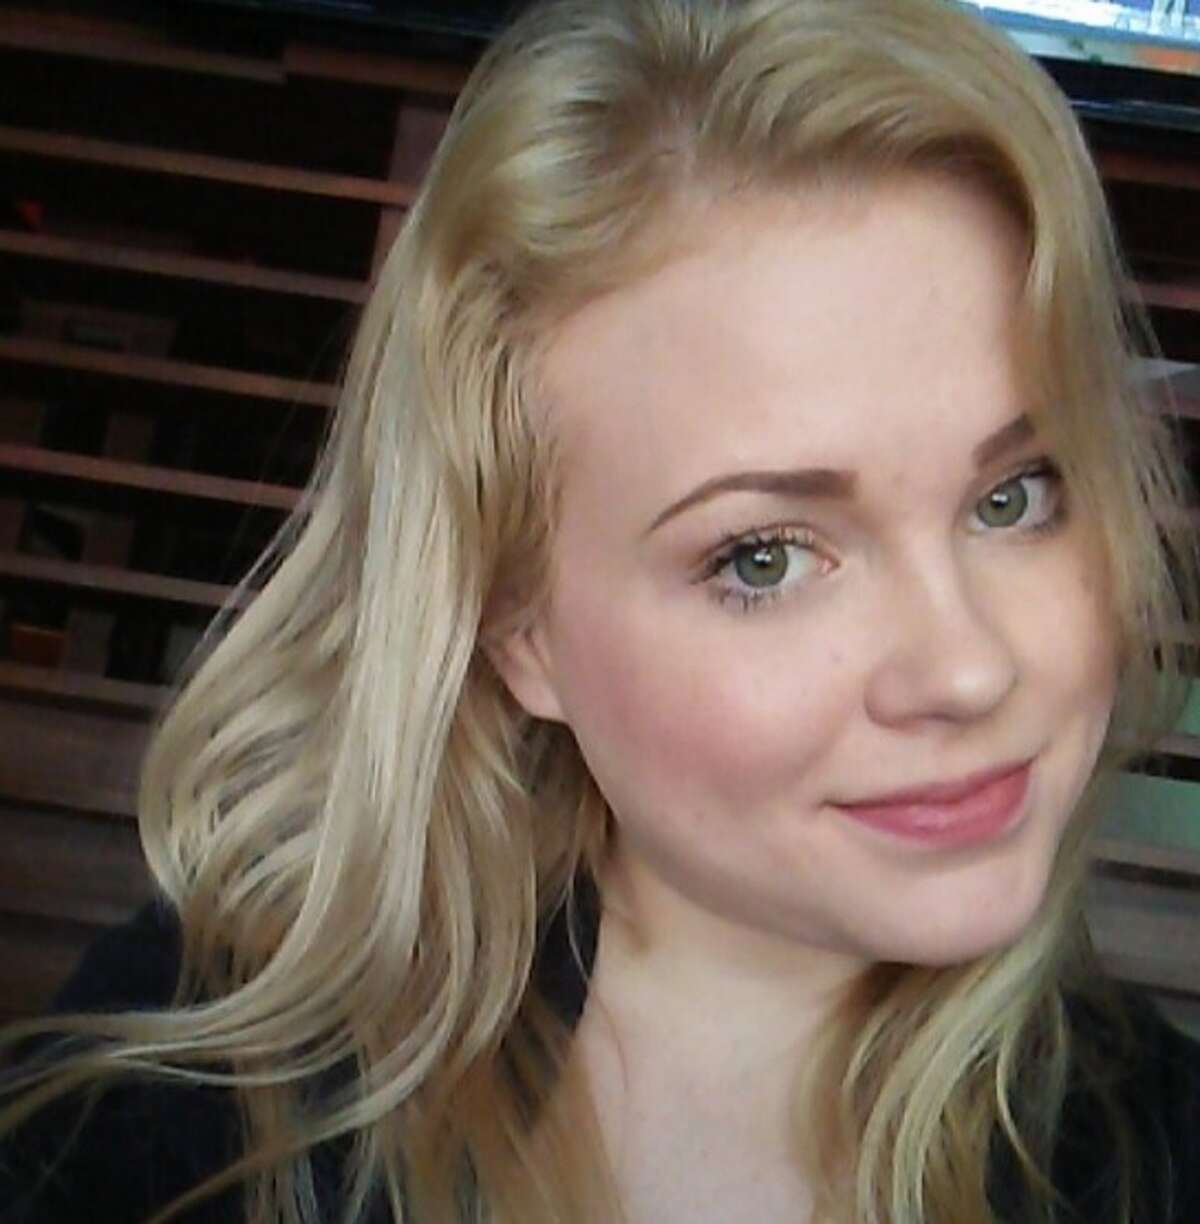 Jacqueline Vandagriff, 24, of Frisco, was found dismembered and burned on Sept. 14, 2016, at Acorn Woods Park in Grapevine, Texas. Image via Twitter